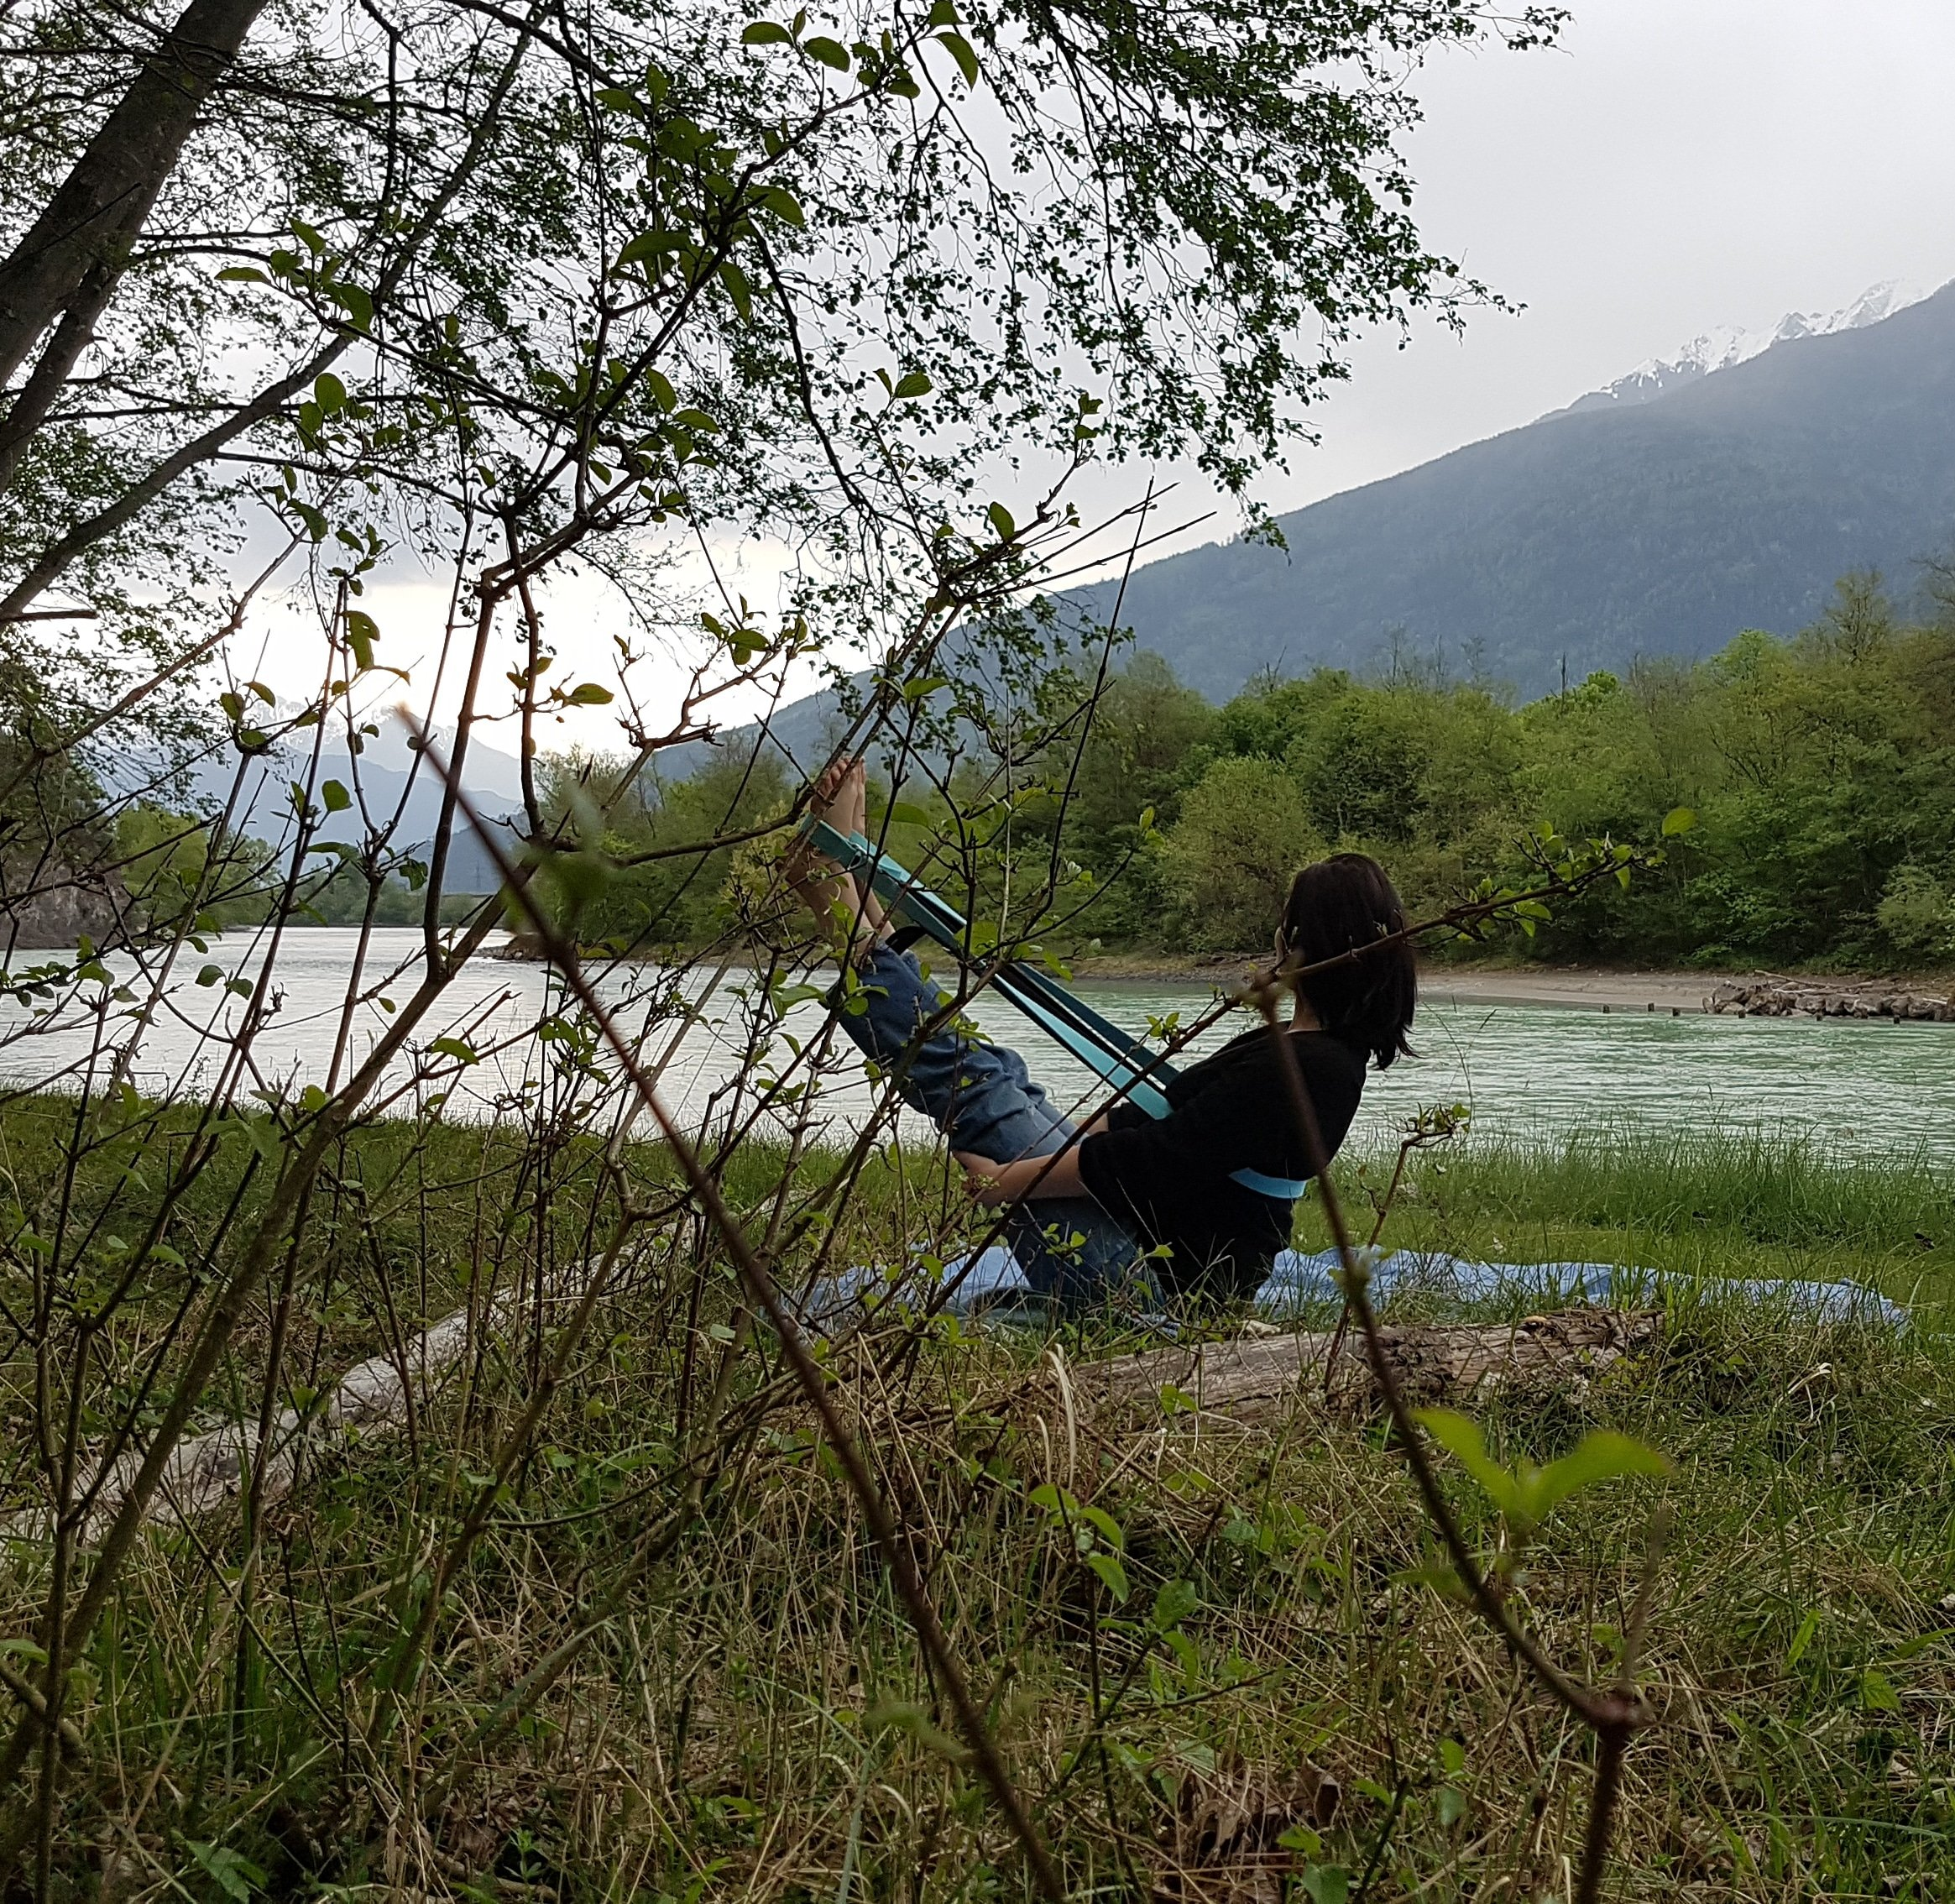 Nathalie Hosp Yoga, Navasana with a strap at the river, Aparigraha, the principle of contentment, Yogaeinzelstunden